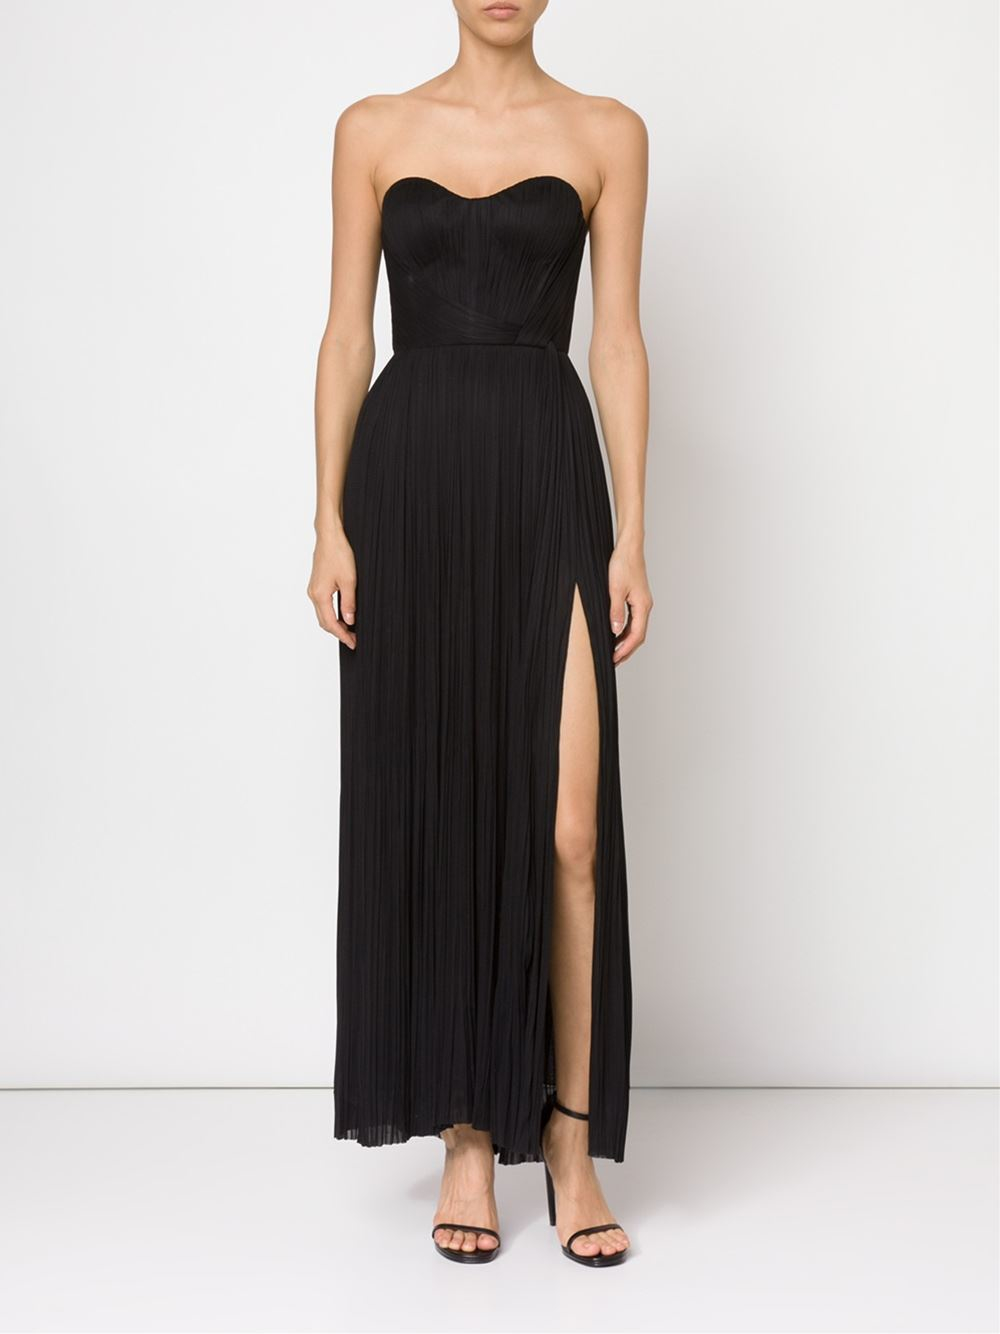 Lyst - Maria lucia hohan Strapless Bustier Evening Dress in Black